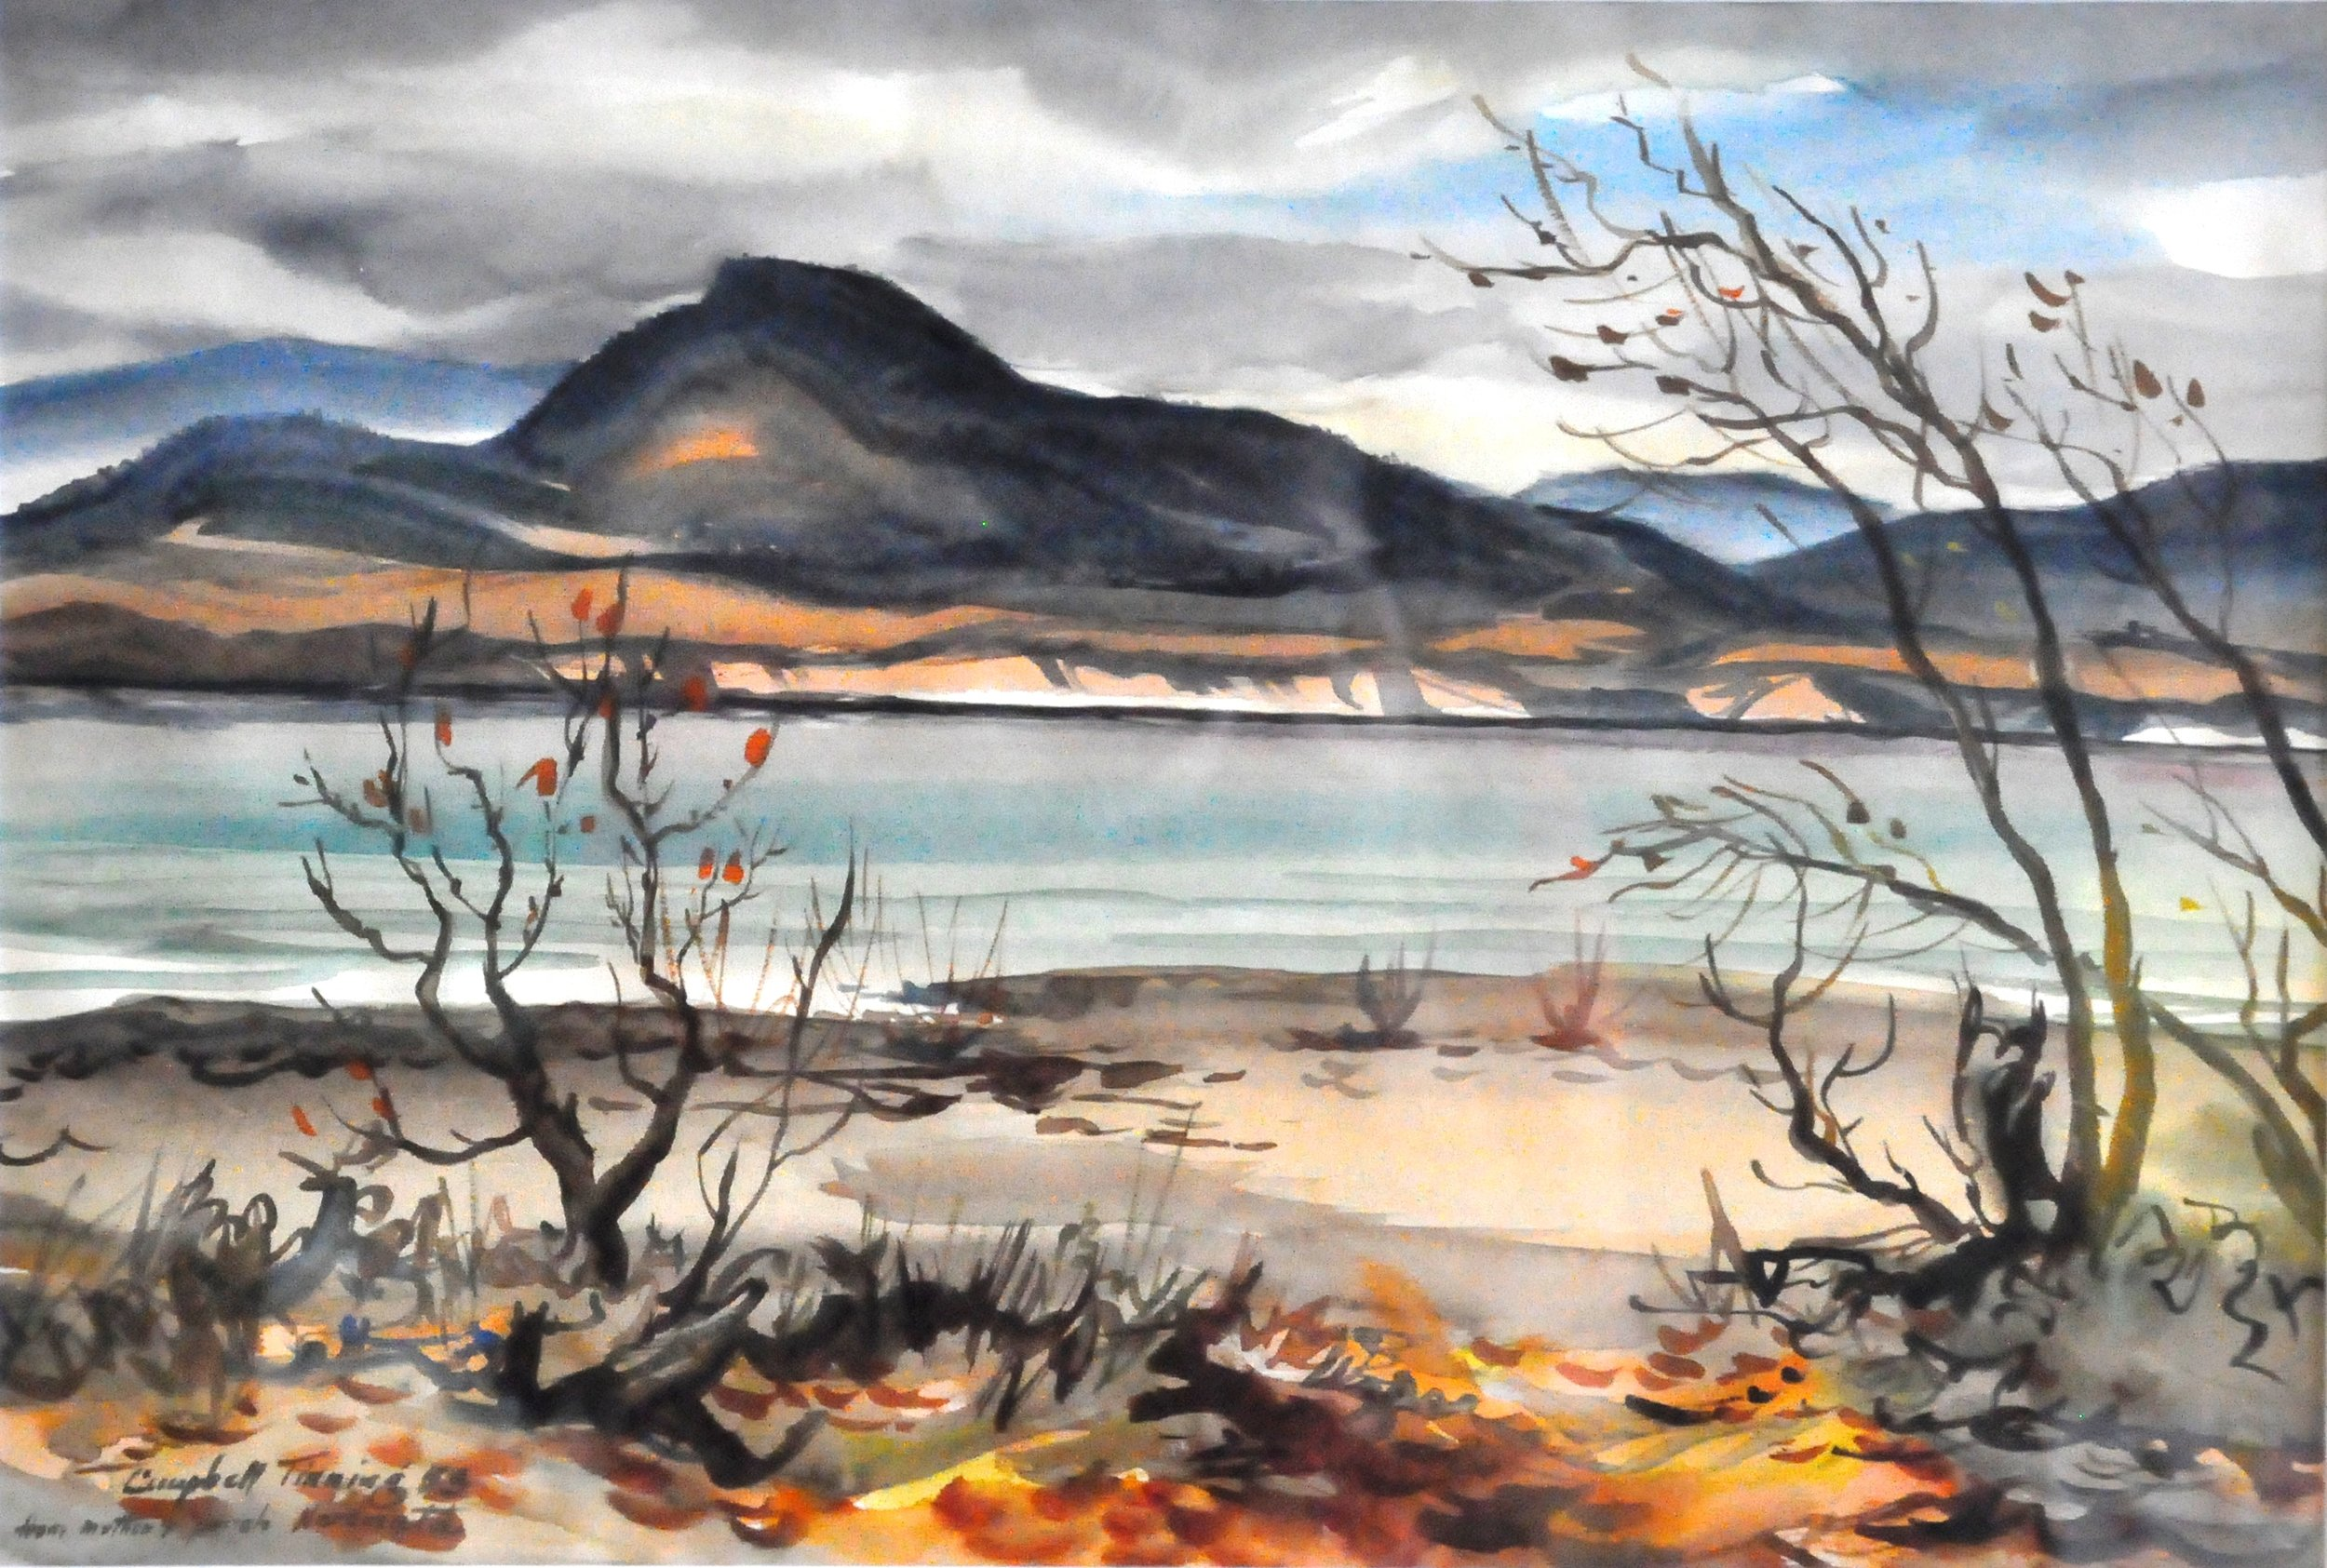 """From Mother's Porch, Naramata , 1953, George Campbell Tinning, watercolour on paper, 11"""" x 16"""", 2006.01.01, gift of Ann Collins"""